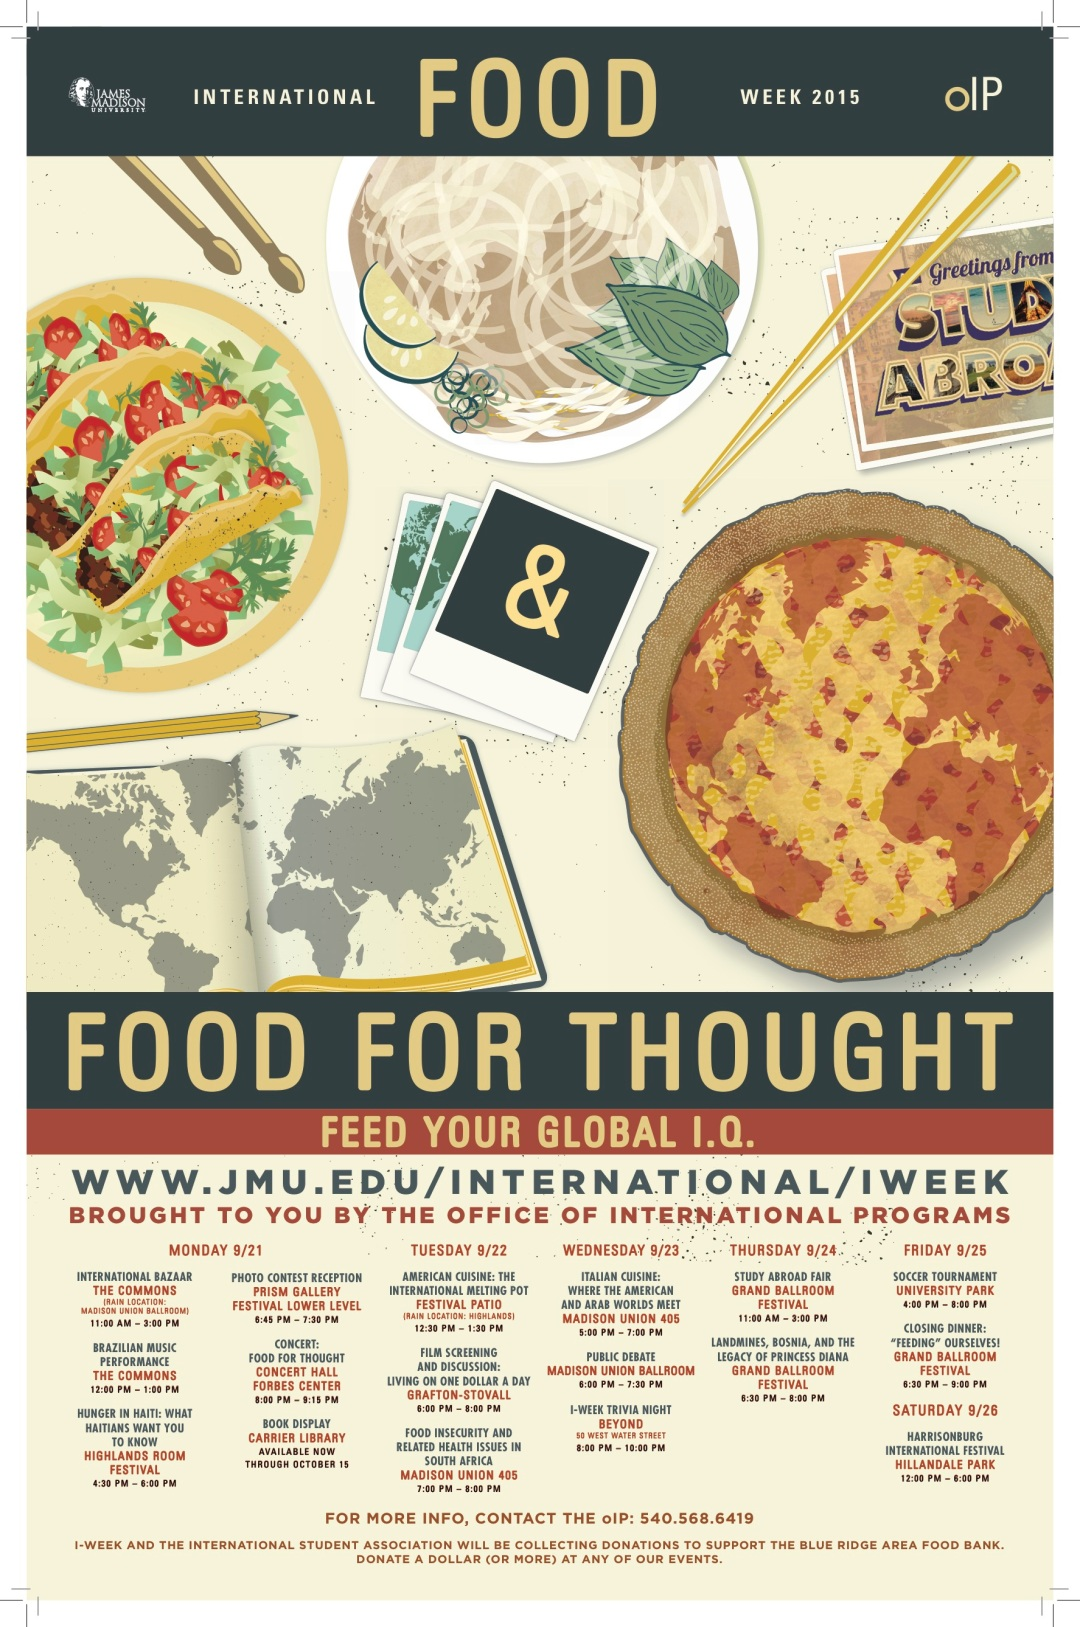 Poster for international week. For full list of events visit the oIP website at http://www.jmu.edu/international/